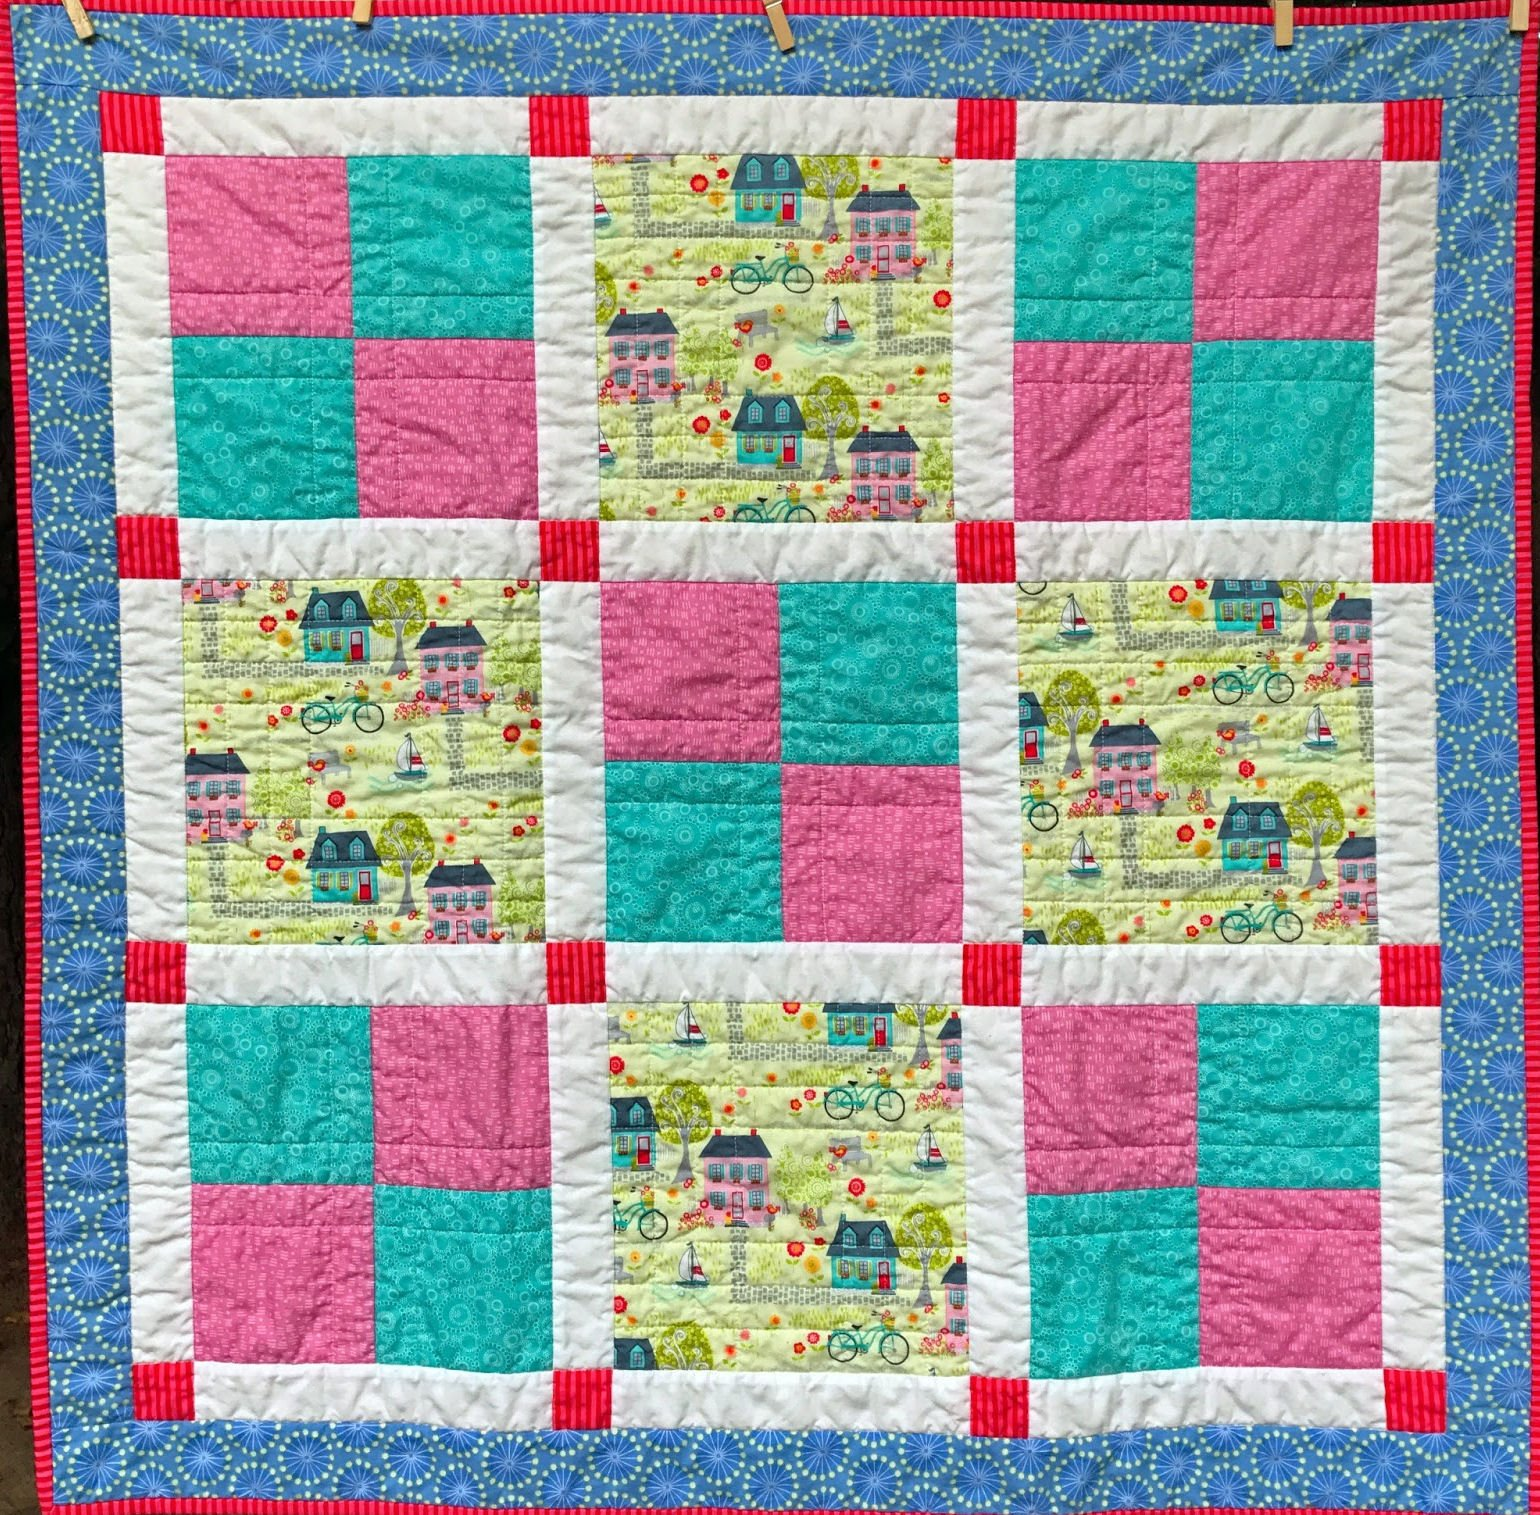 Sewing & Quilting Classes | New Machine Owner Education : beginners quilting classes - Adamdwight.com